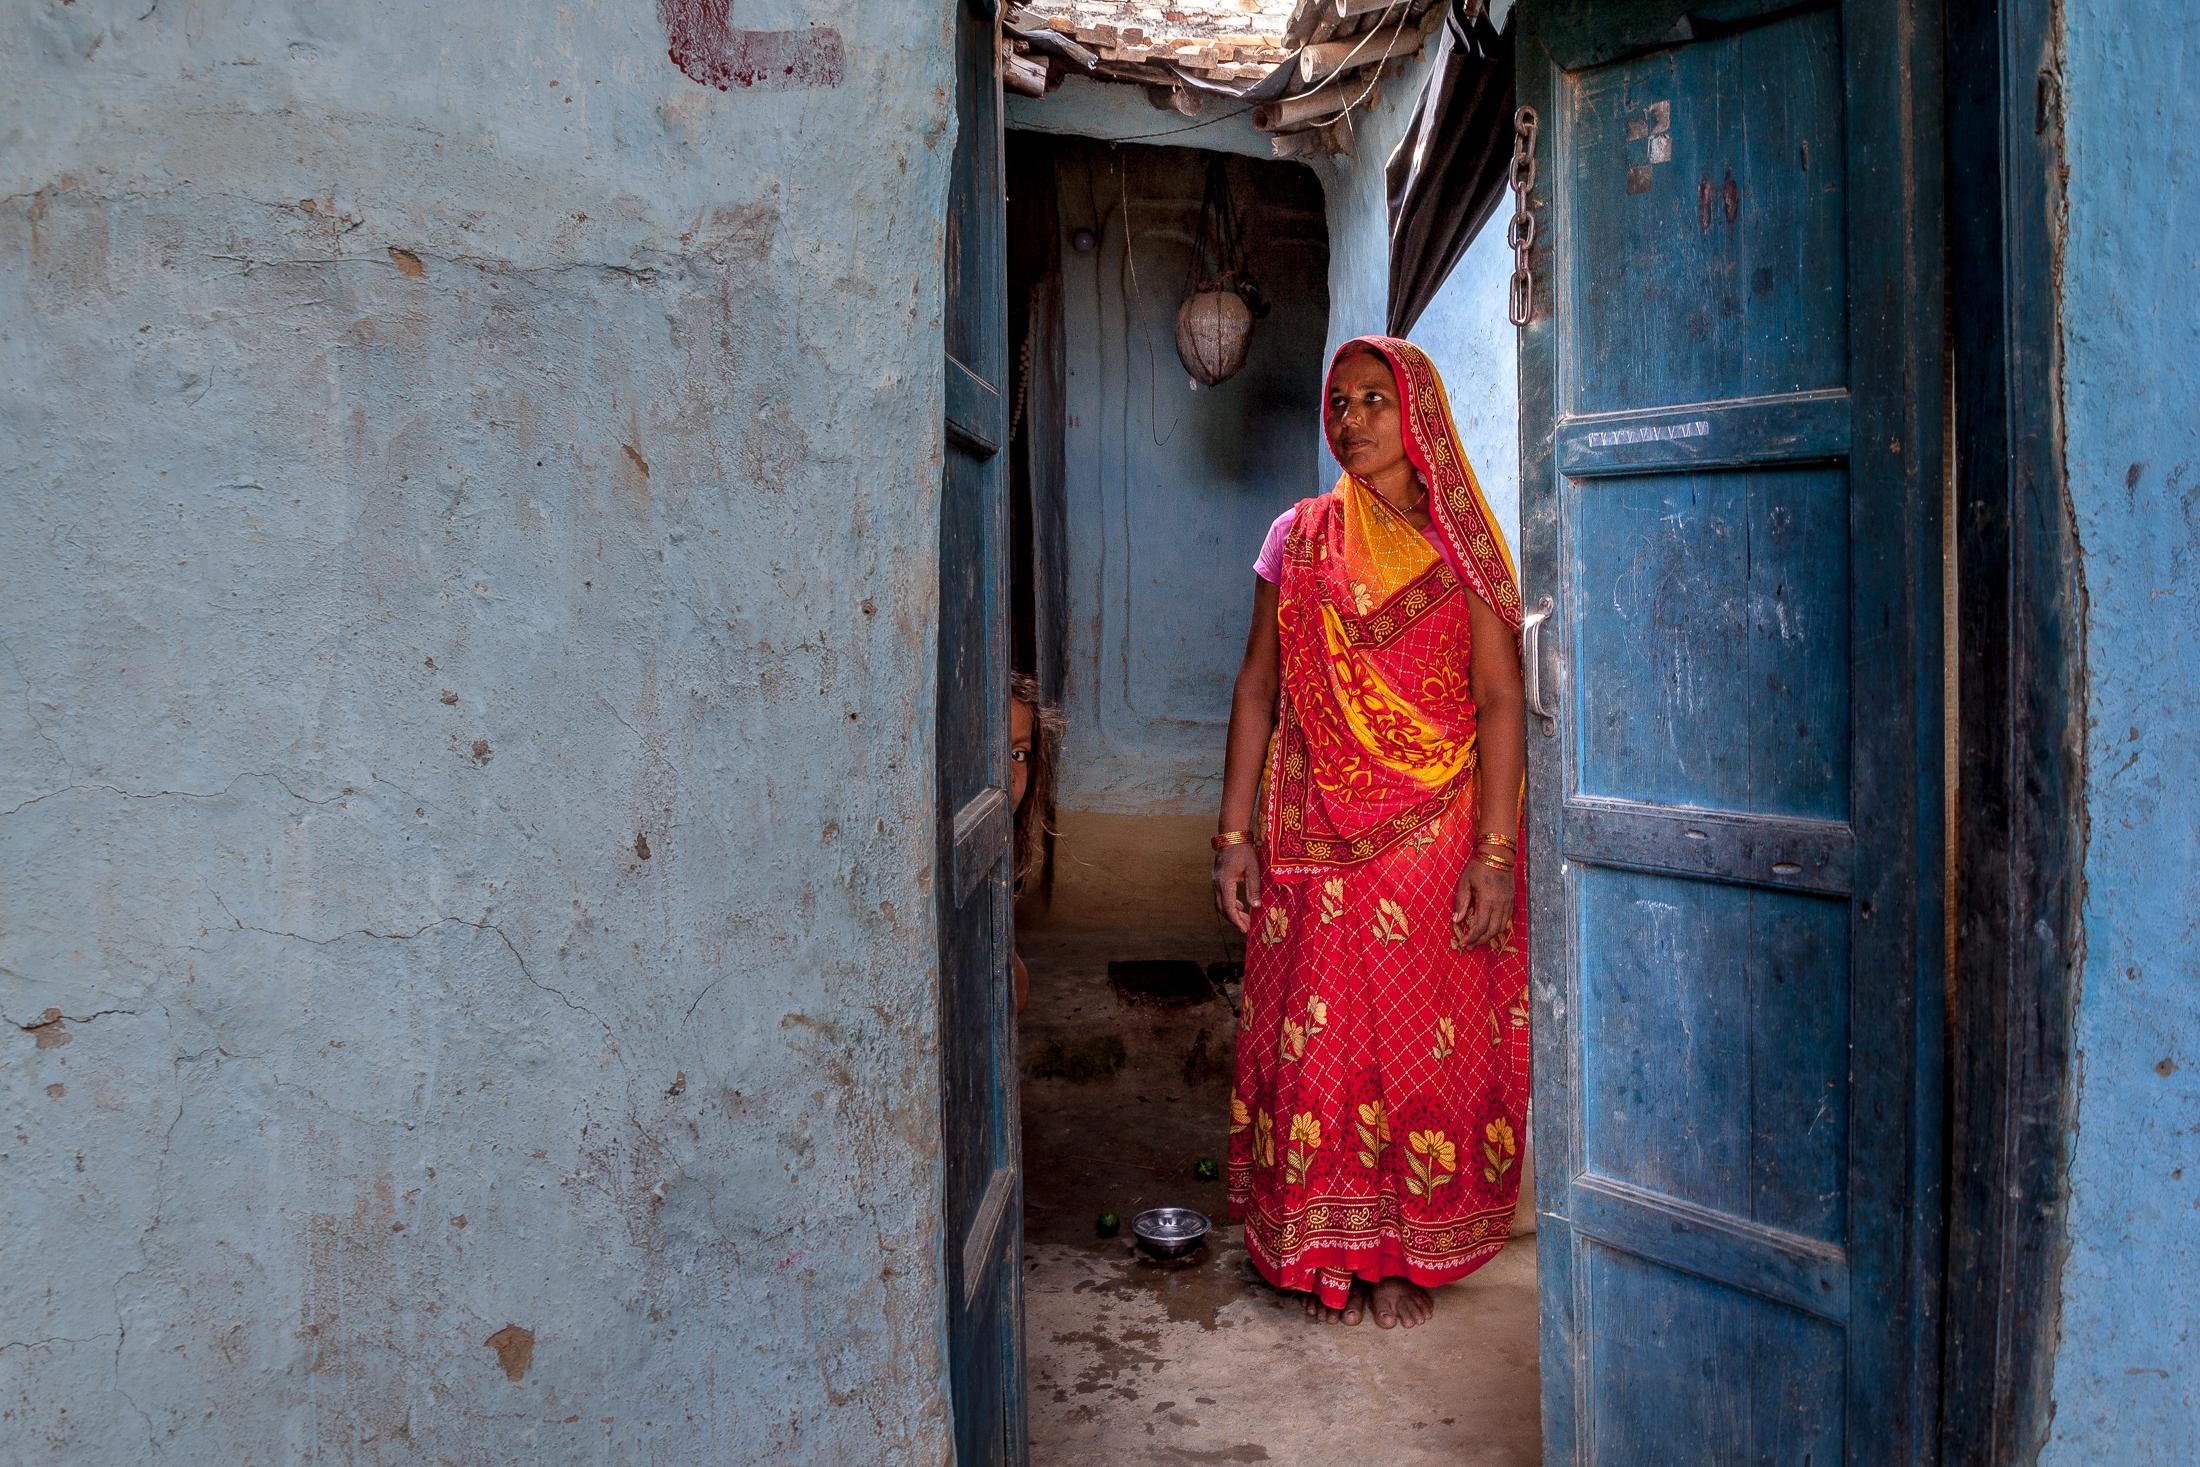 JANAKPUR, NEPAL - JULY 23: Bobita Devi Mahara, 42 years of age, is seen through the door of her home in a remote village on July 23, 2015 near Janakpur, Nepal. Bobita is a Maithil woman who has started to break the Maithil tradition which often keeps women inside their homes and forces them to hide their faces while speaking to other people. Bobita is working as a road construction worker since 2014, earning income to help her family, and especially to send her daughter to school. Photo: © Omar Havana